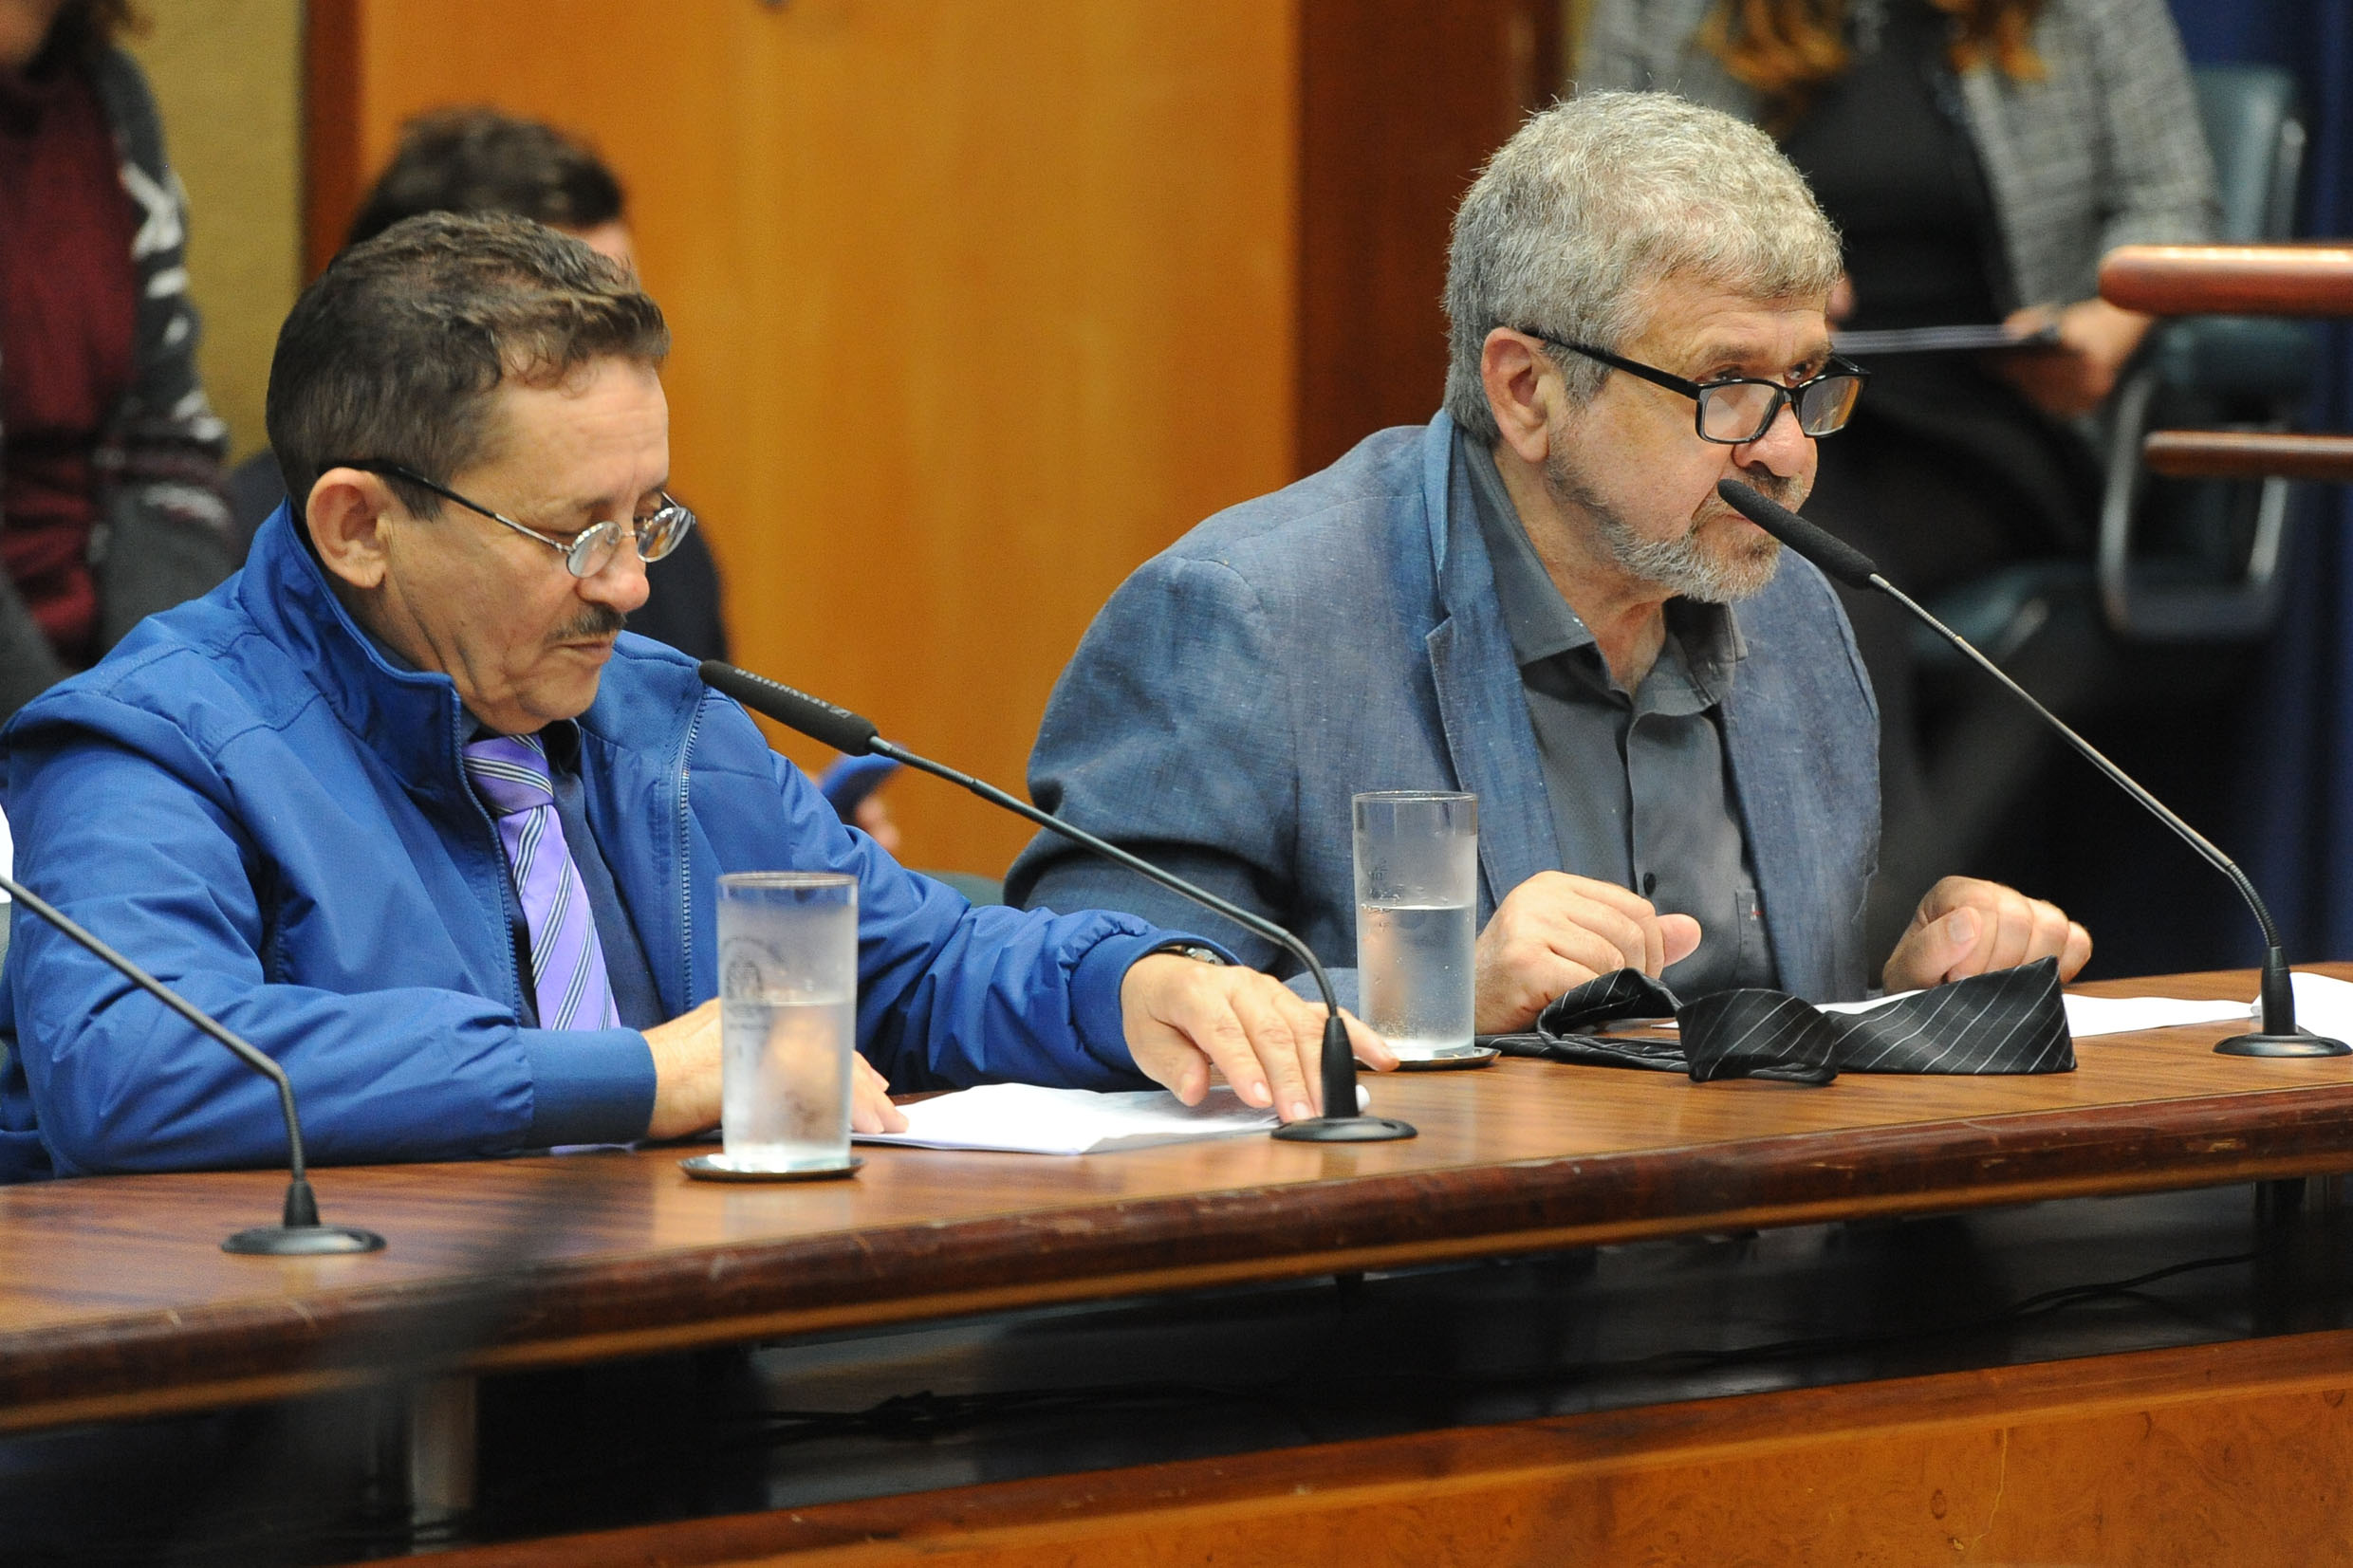 Parlamentares na comissão<a style='float:right' href='https://www3.al.sp.gov.br/repositorio/noticia/N-11-2018/fg227801.jpg' target=_blank><img src='/_img/material-file-download-white.png' width='14px' alt='Clique para baixar a imagem'></a>